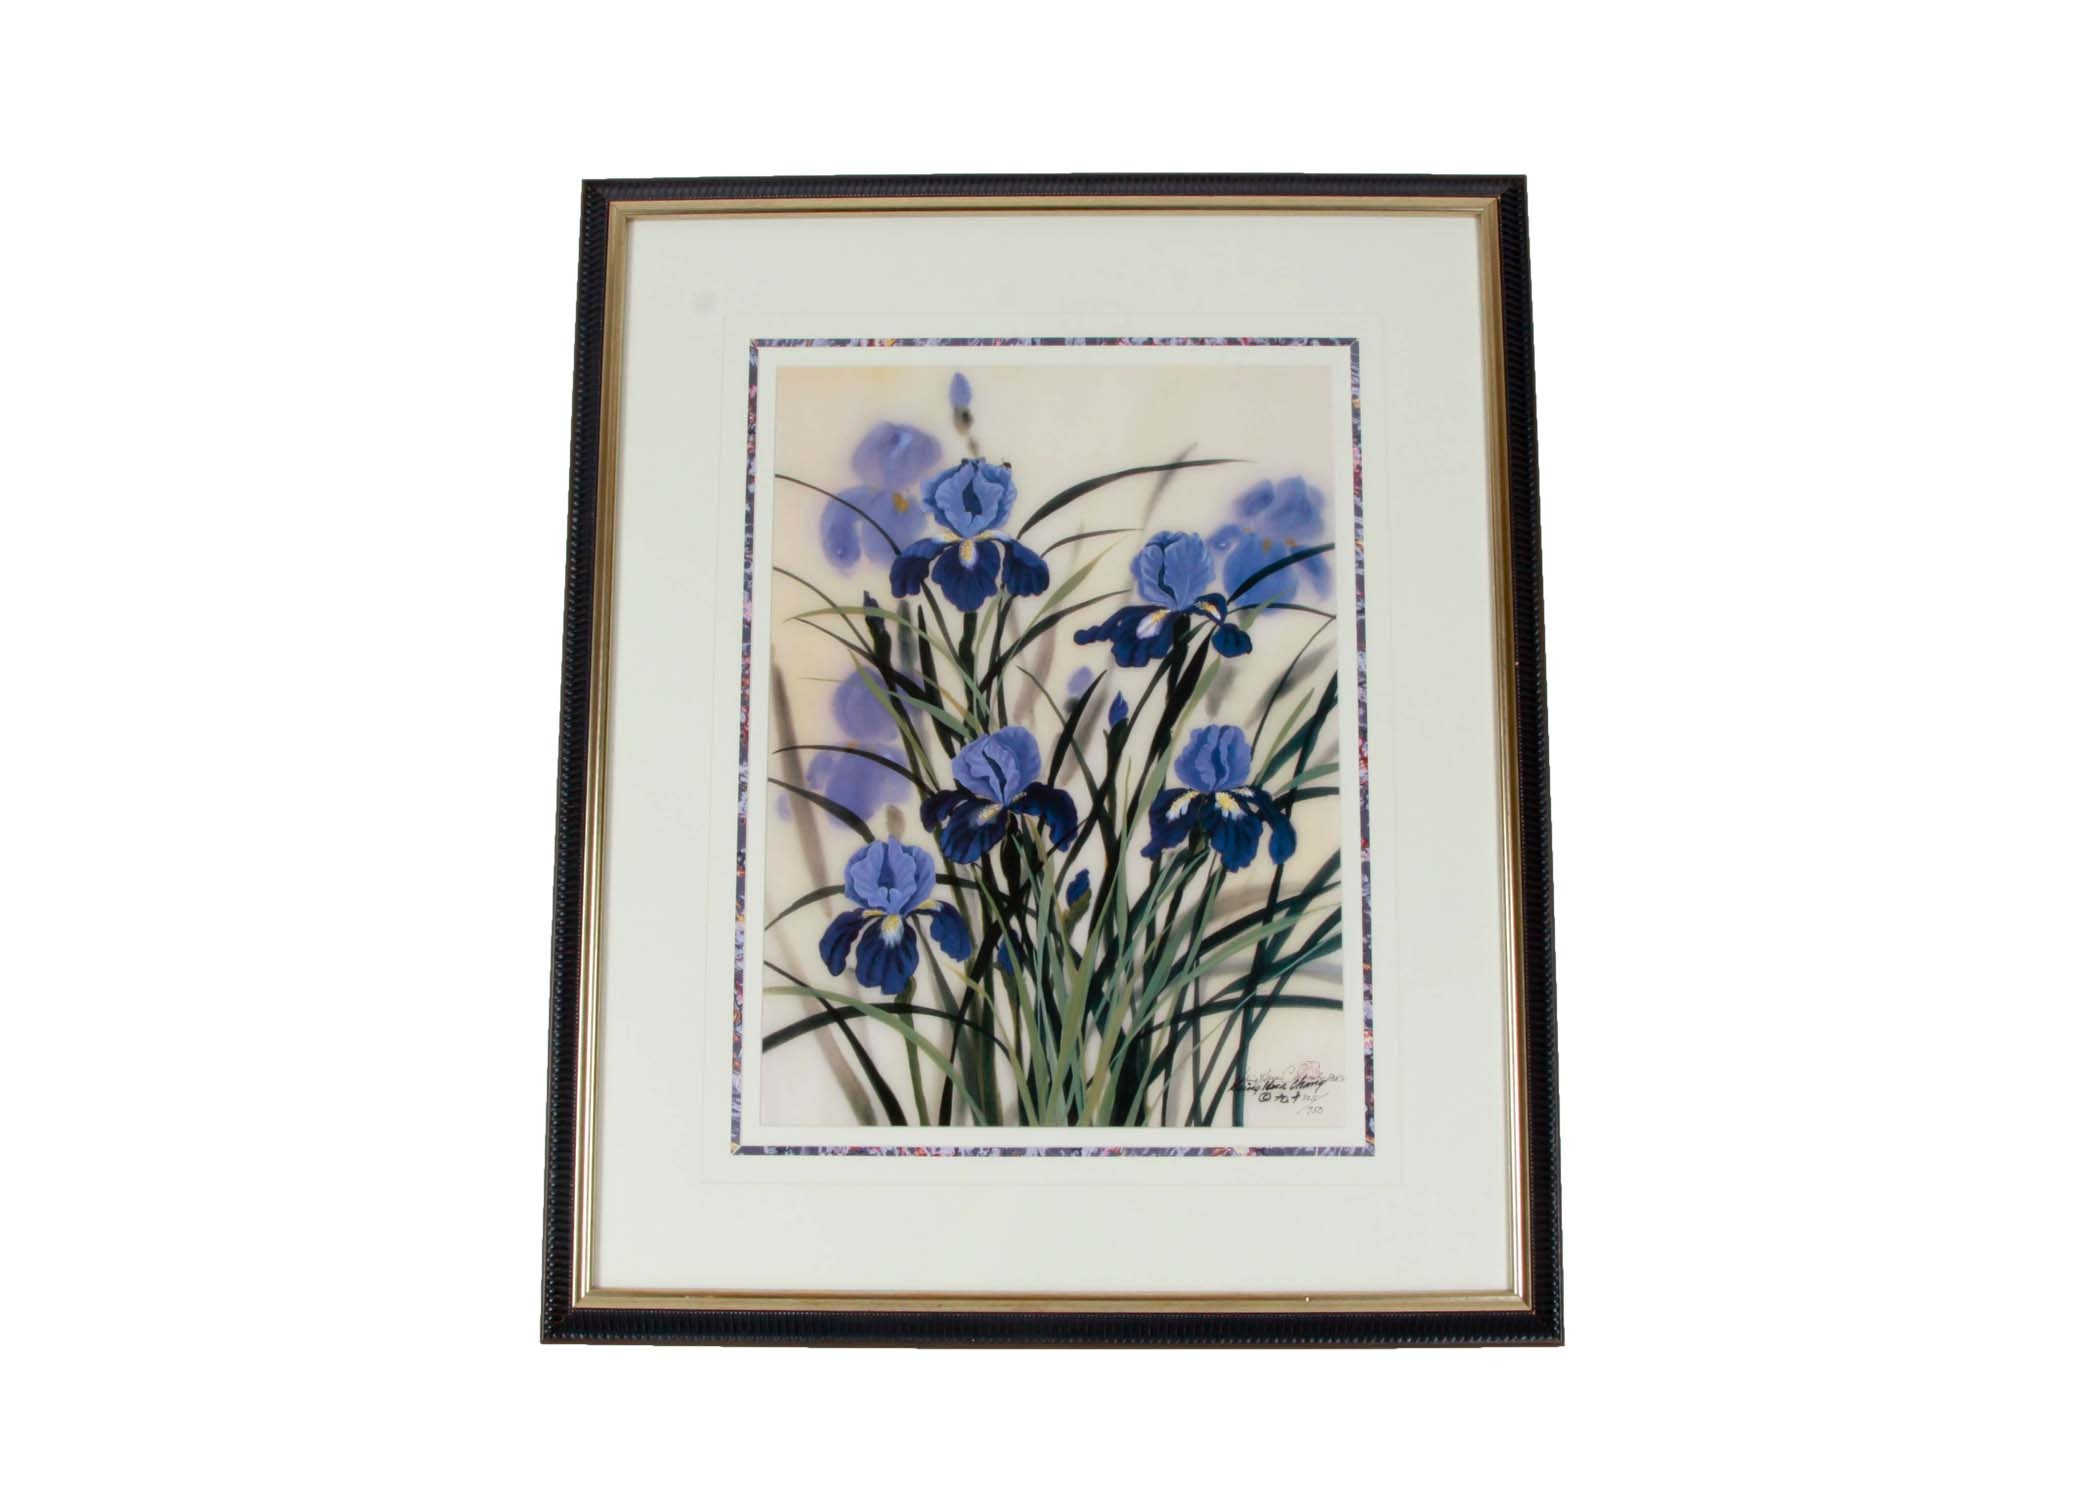 Hsing Hua Chang Limited Edition Offset Lithograph of Blue Irises